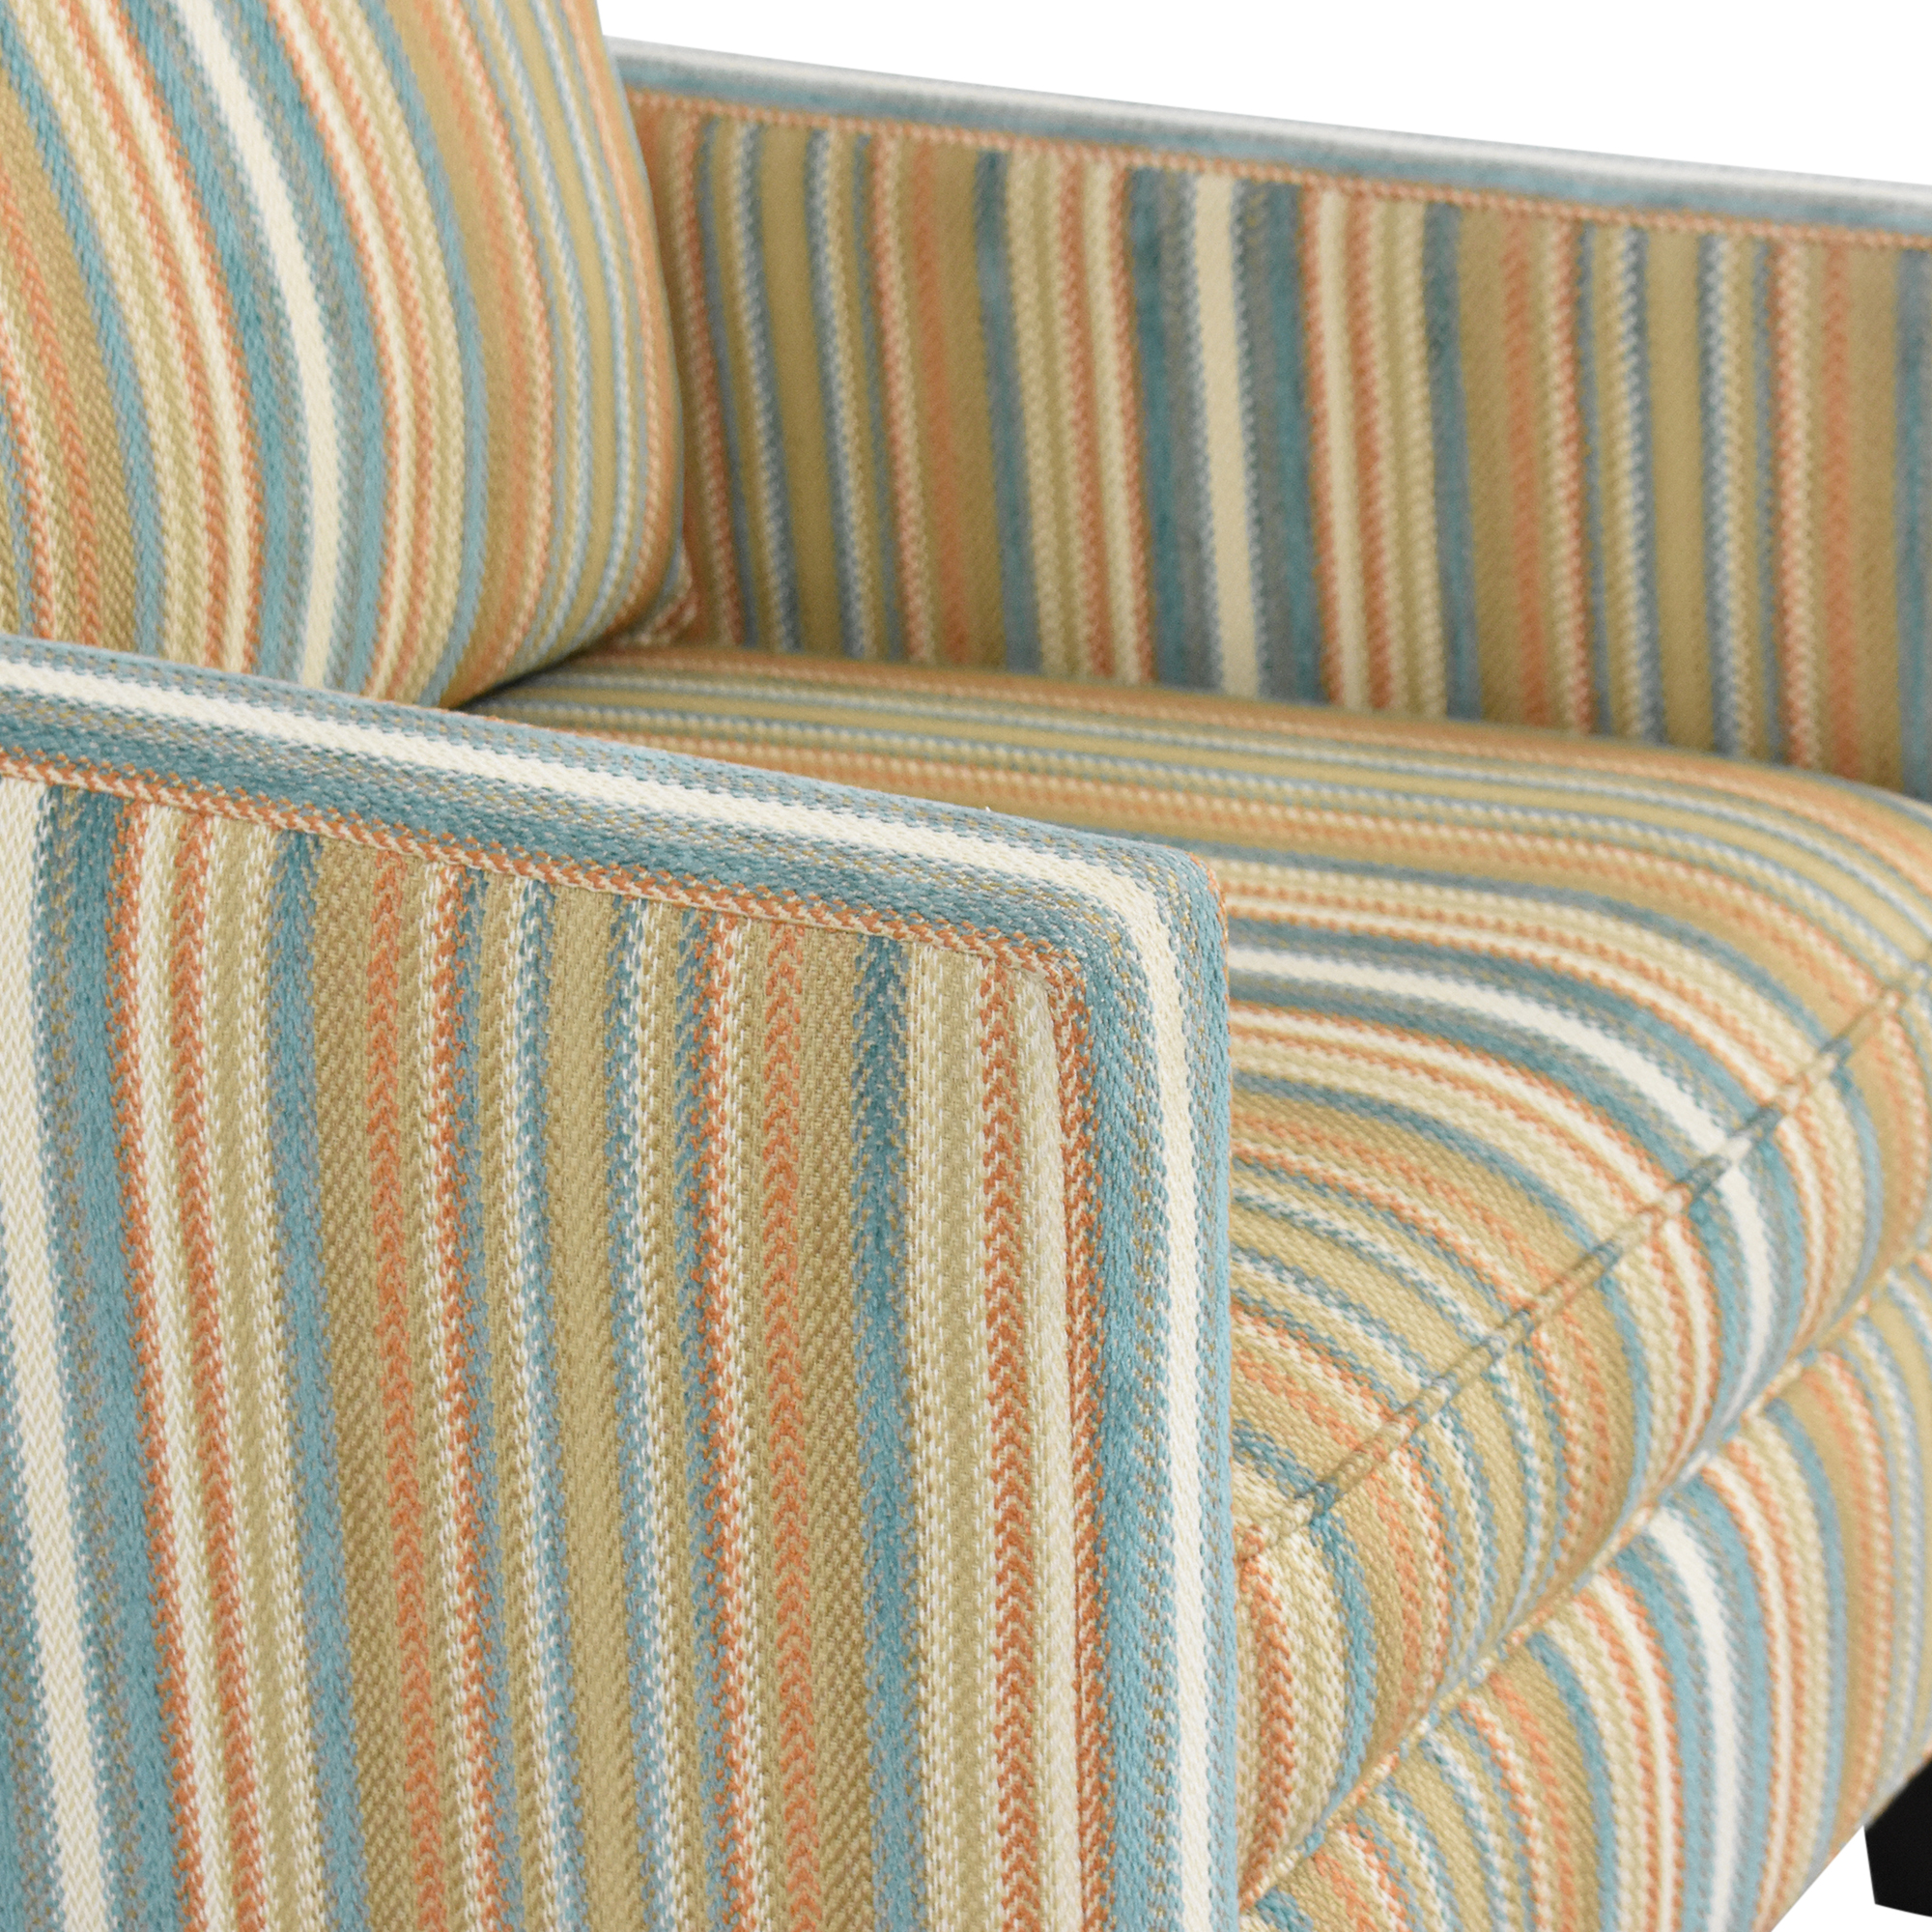 buy Thomasville Striped Accent Chair Thomasville Accent Chairs